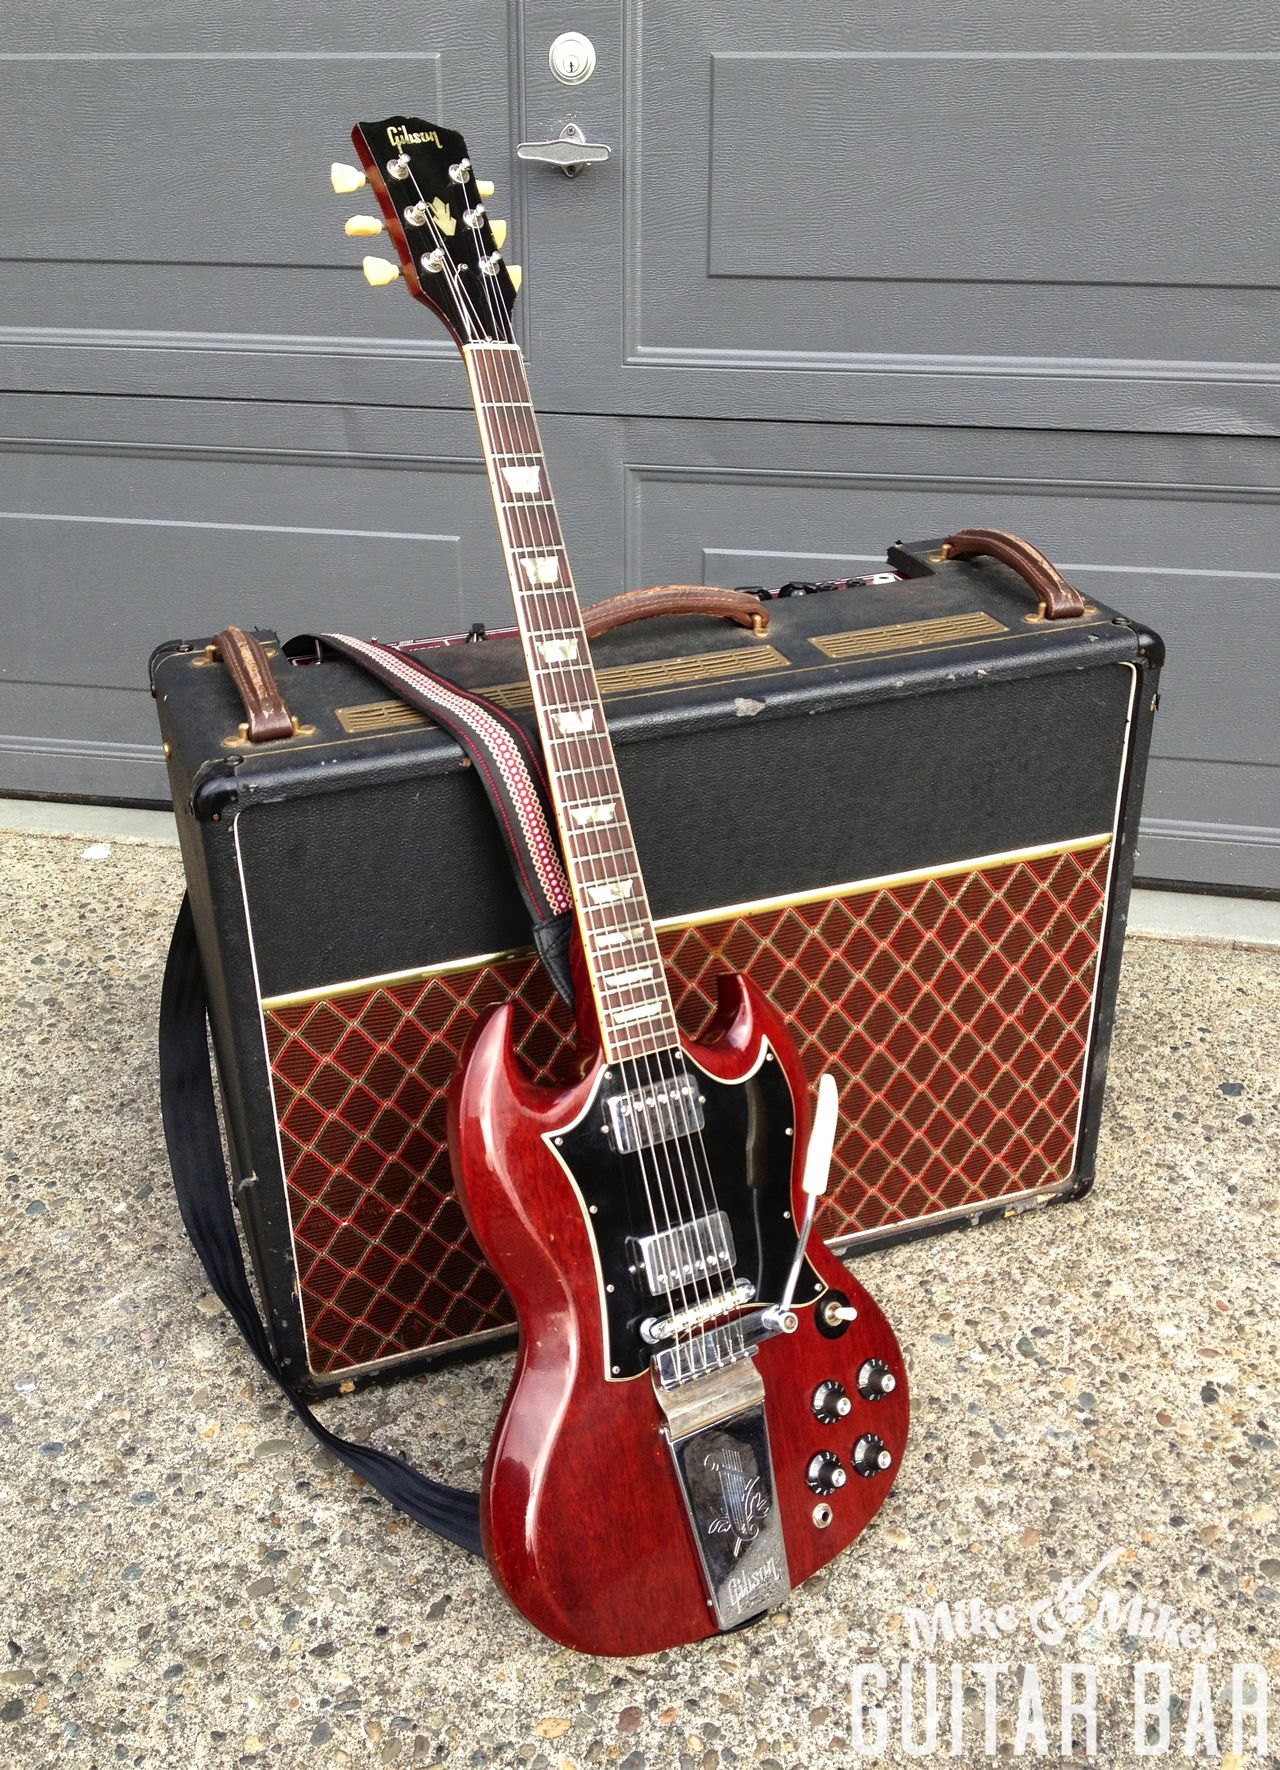 Crise De Gas Confiez Vous Ici Parlez Librement Guitars Epi Vs Gibson Selector Switch Mylespaulcom Mmguitarbar A 68 Sg Standard With Lyre Vibrola And An Early 90s Vox